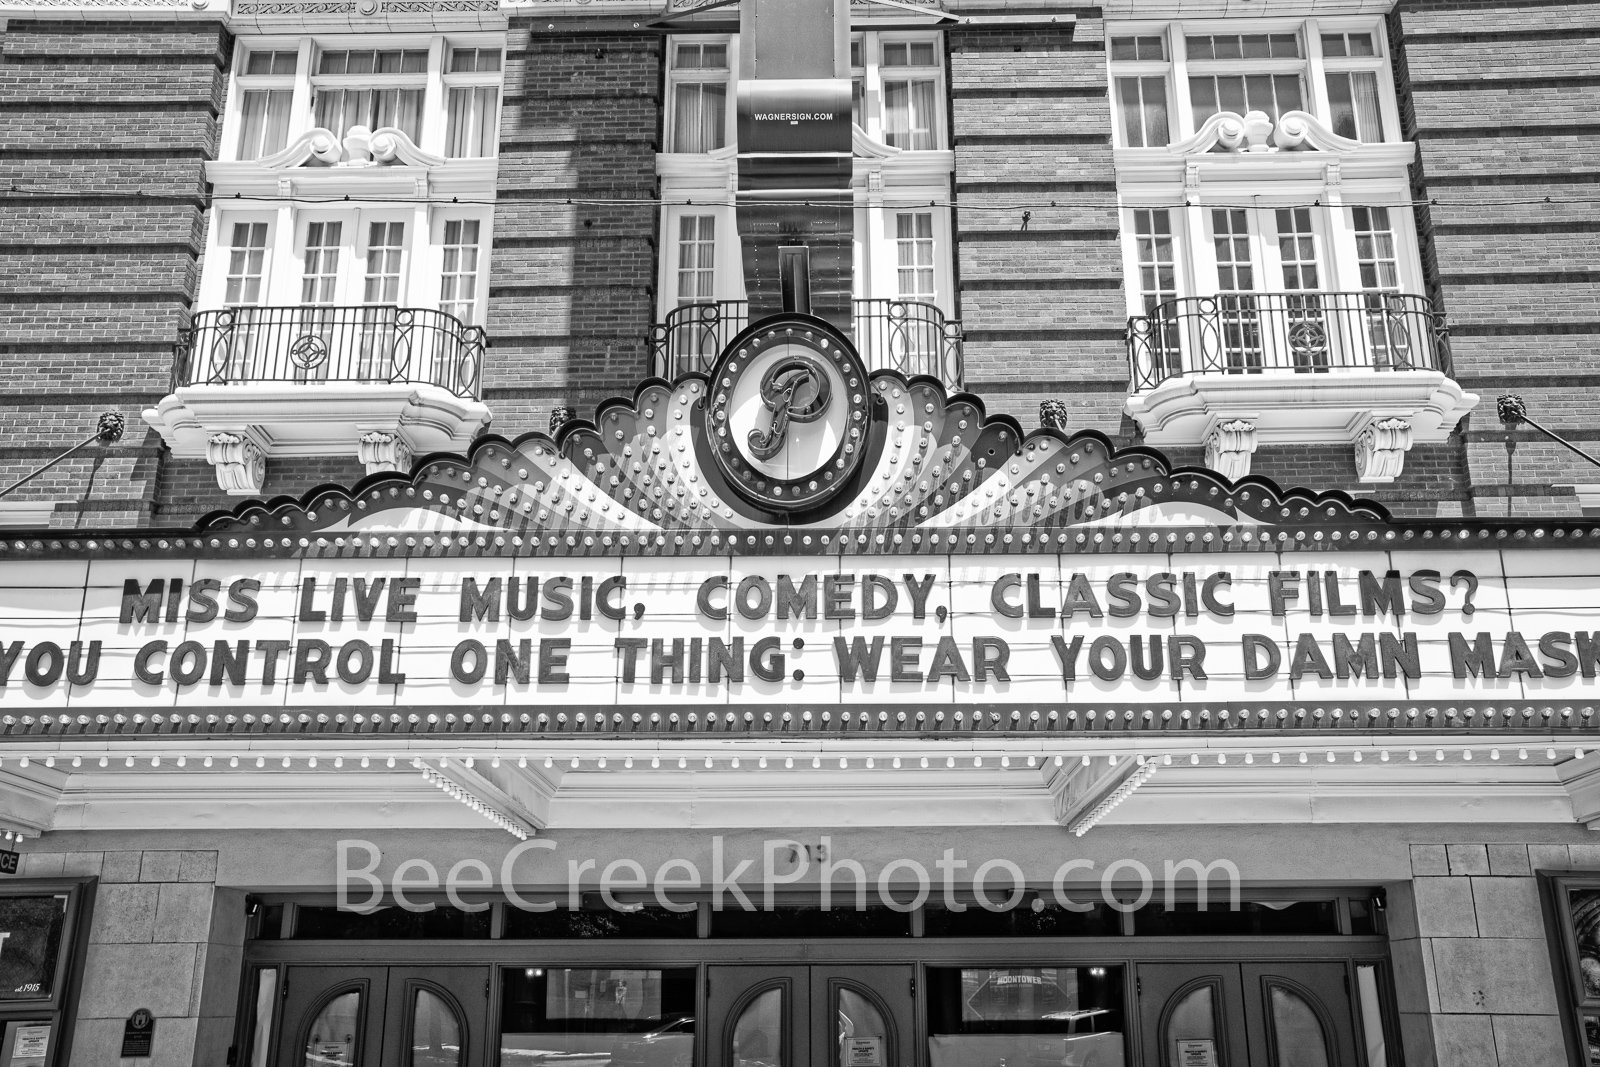 Paramount Theatre Marquee BW 2 - This the Paramount Theatre which is a live theatre venue/movie theatre located in downtown Austin...